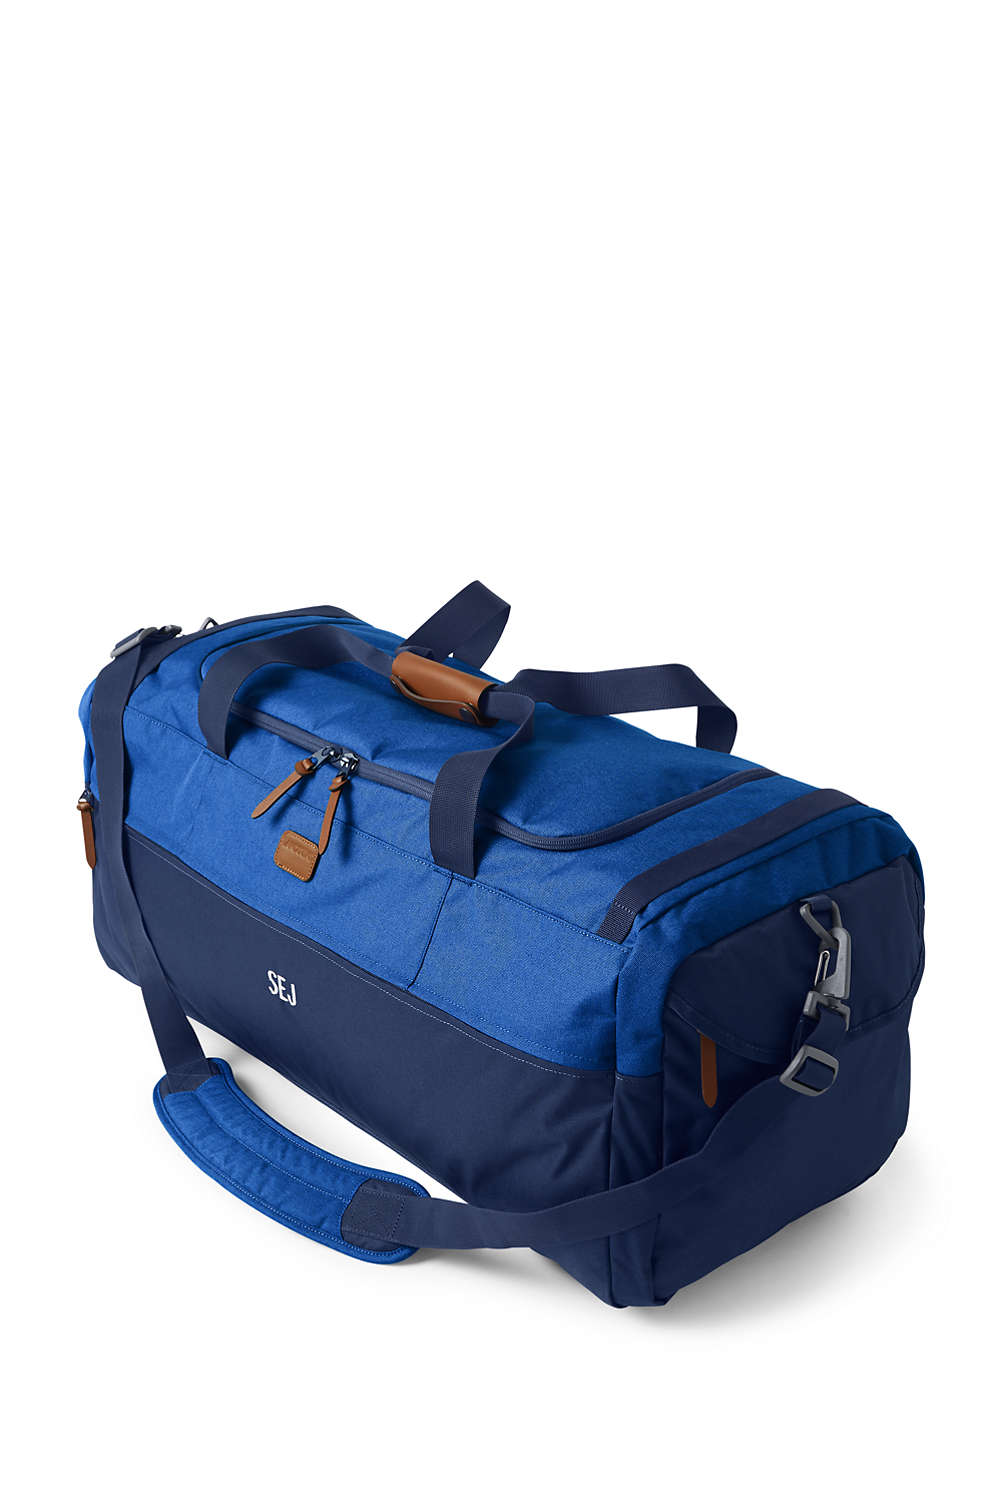 709d1fefecf7 Large Everyday Duffle Bag from Lands  End